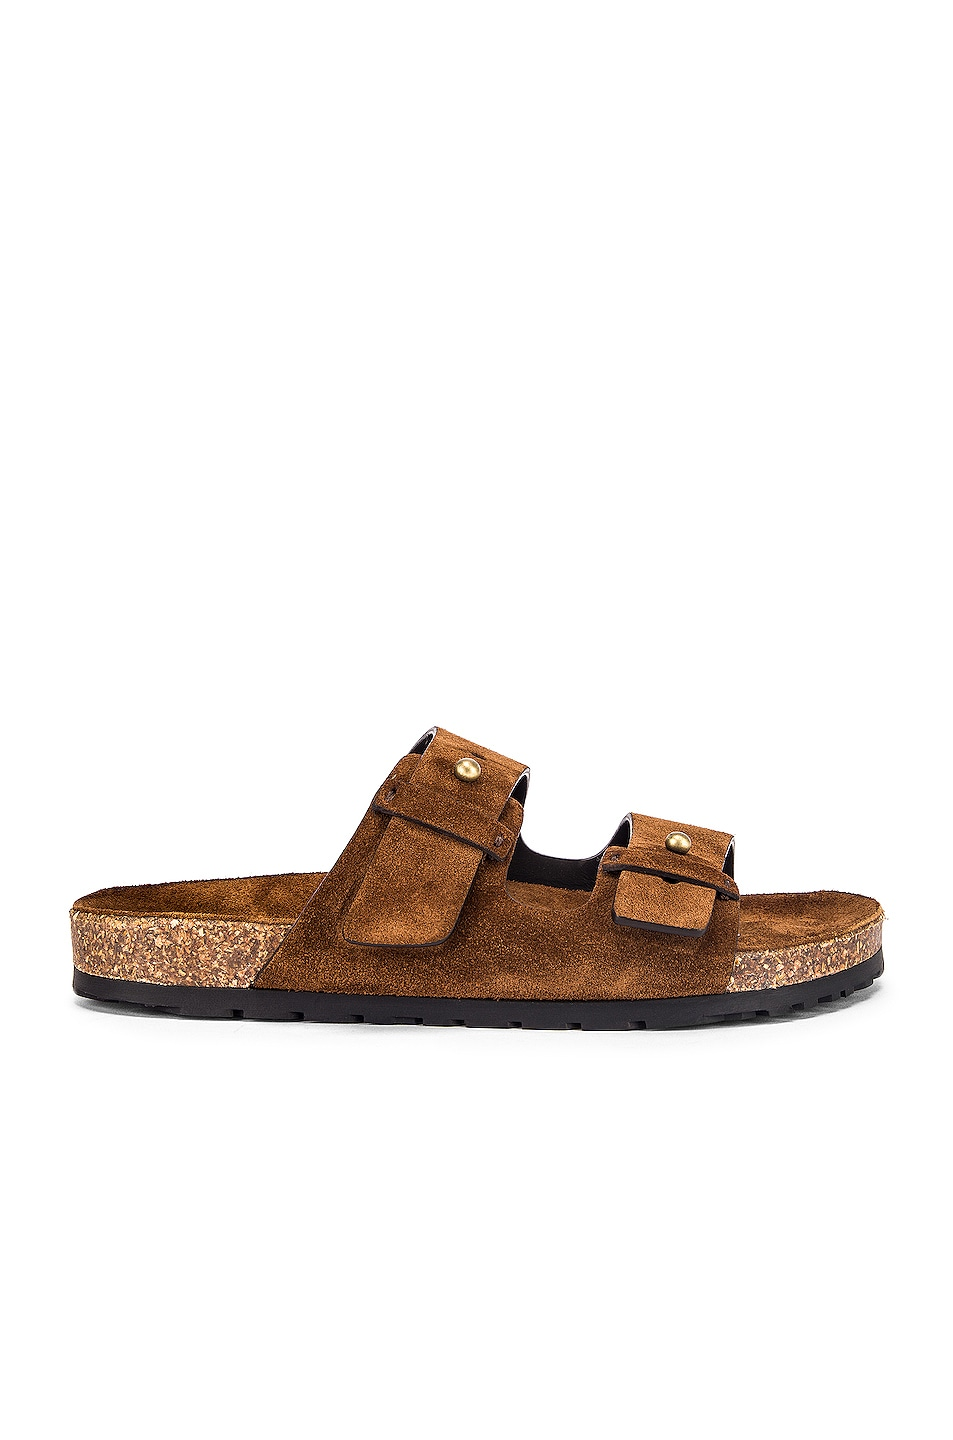 Image 1 of Saint Laurent Jimmy Buckle Sandals in Land